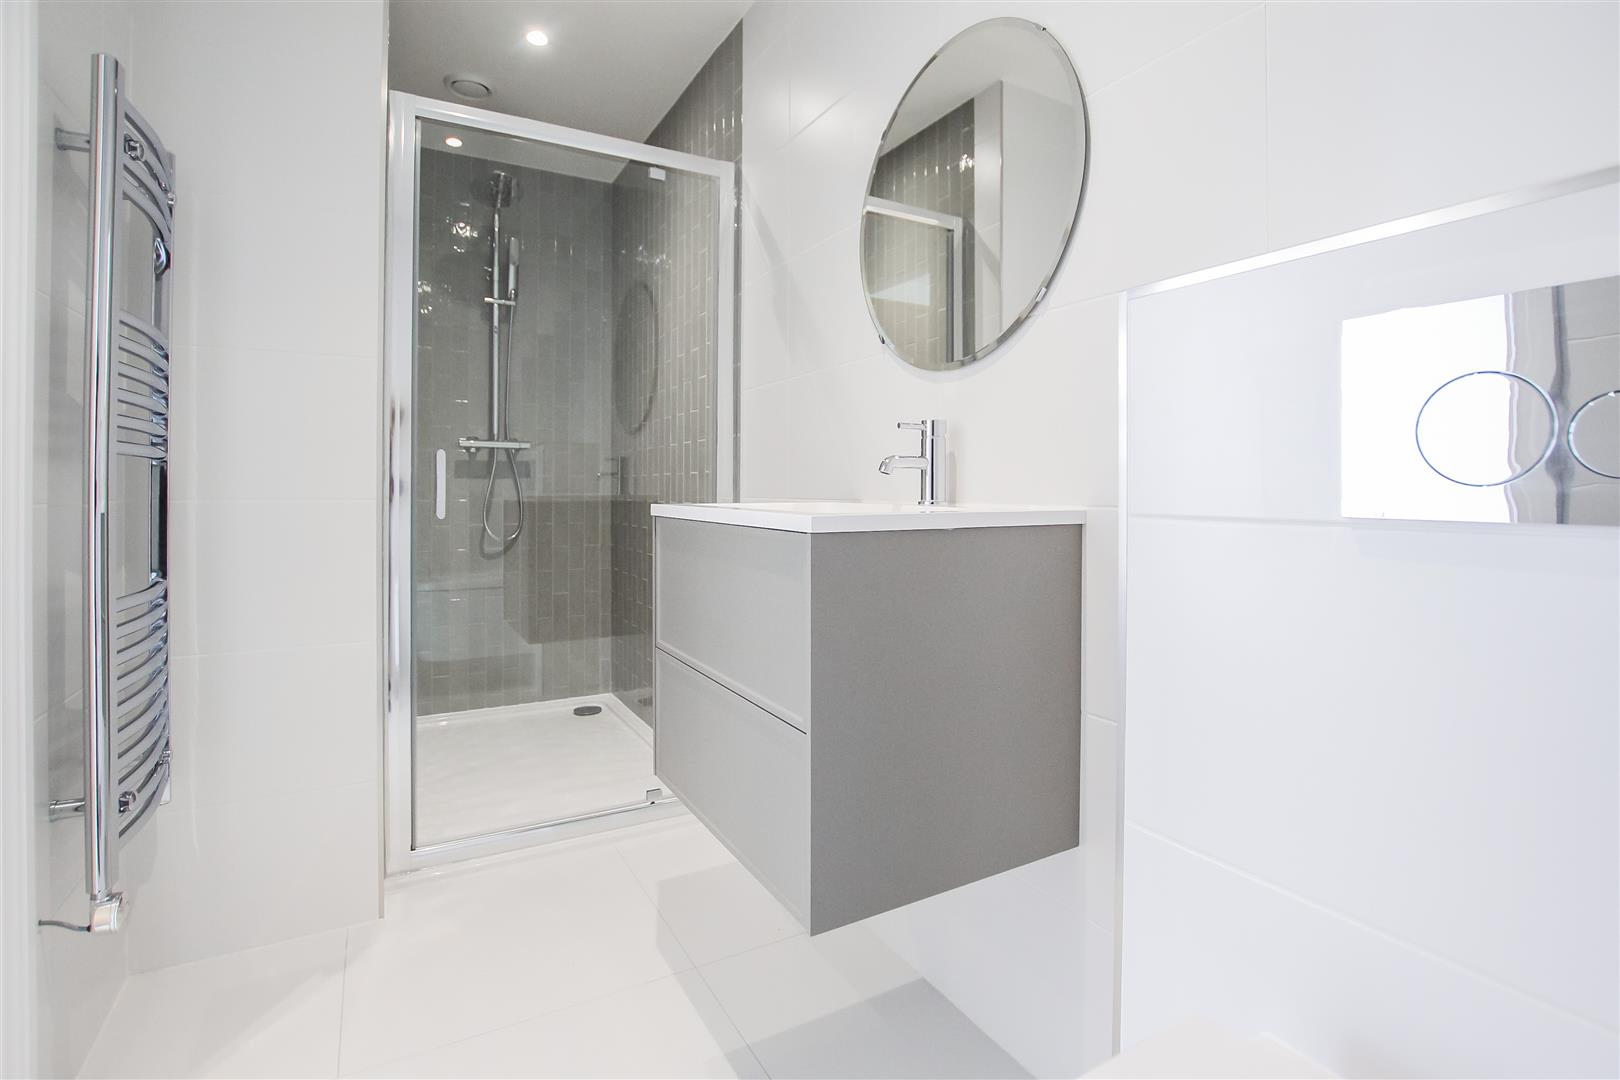 2 Bedroom Apartment For Sale - Image 8